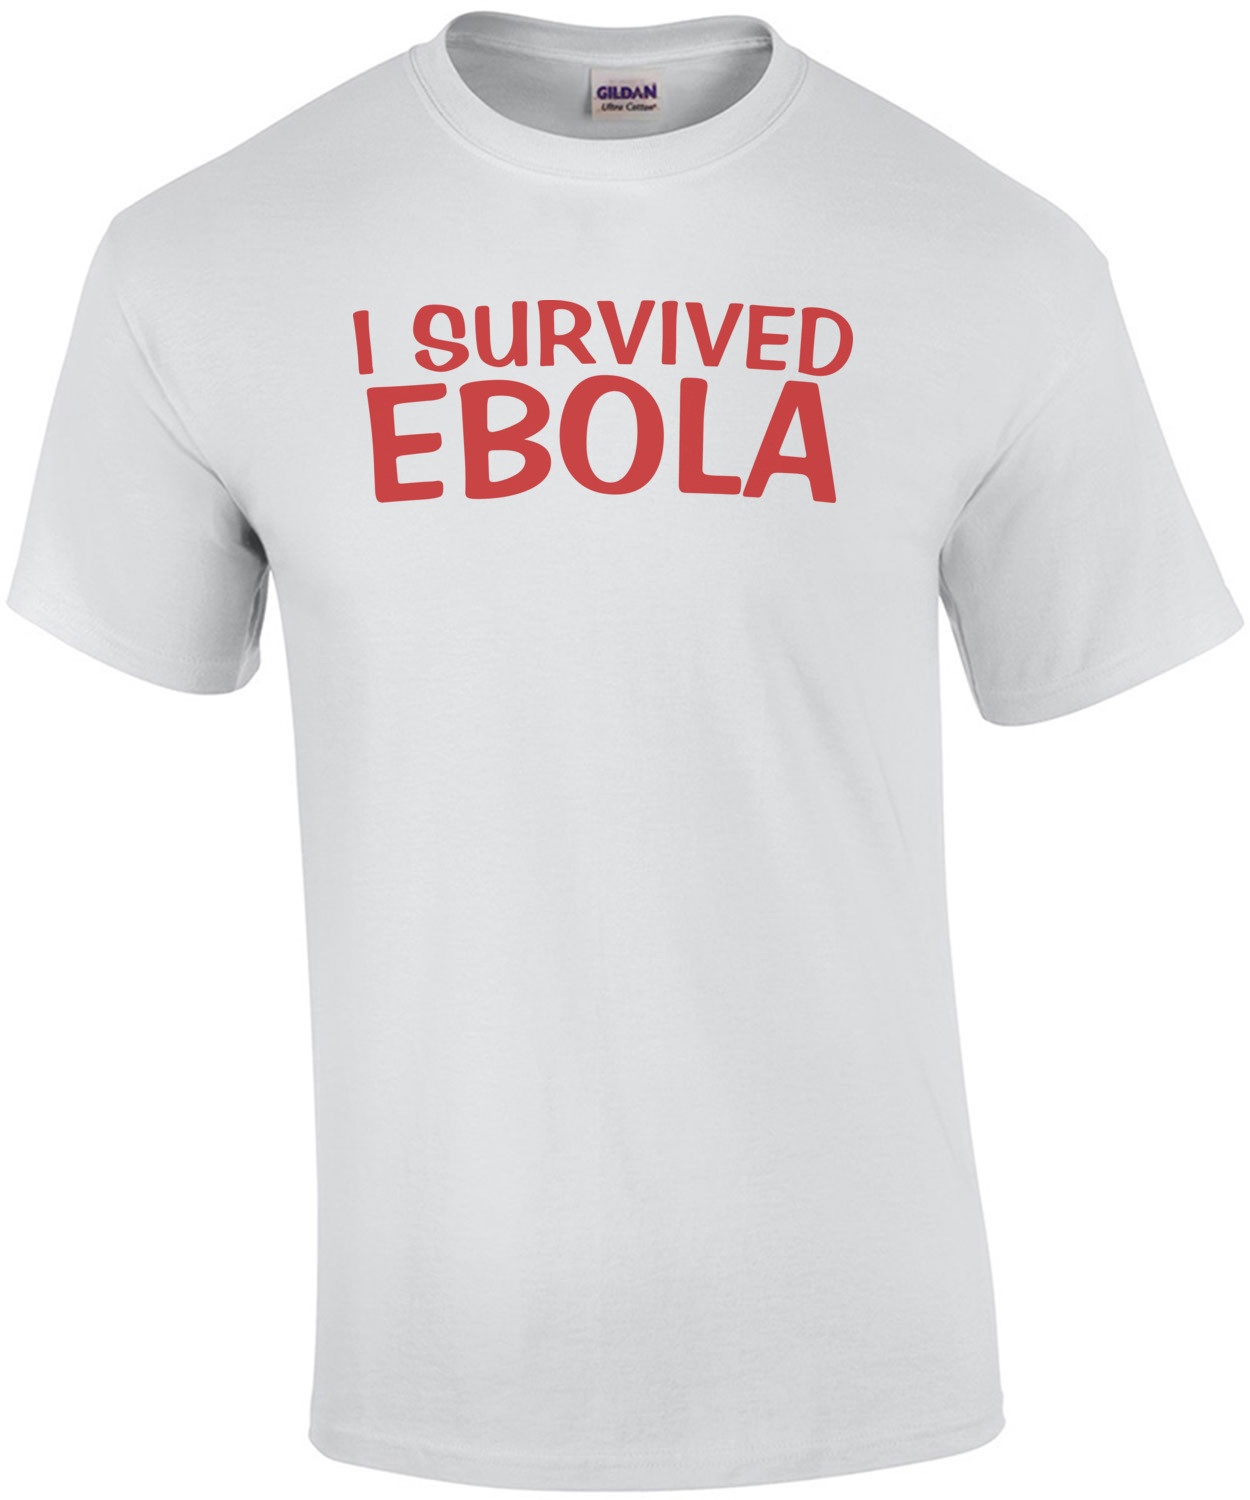 I Survived Ebola T-Shirt